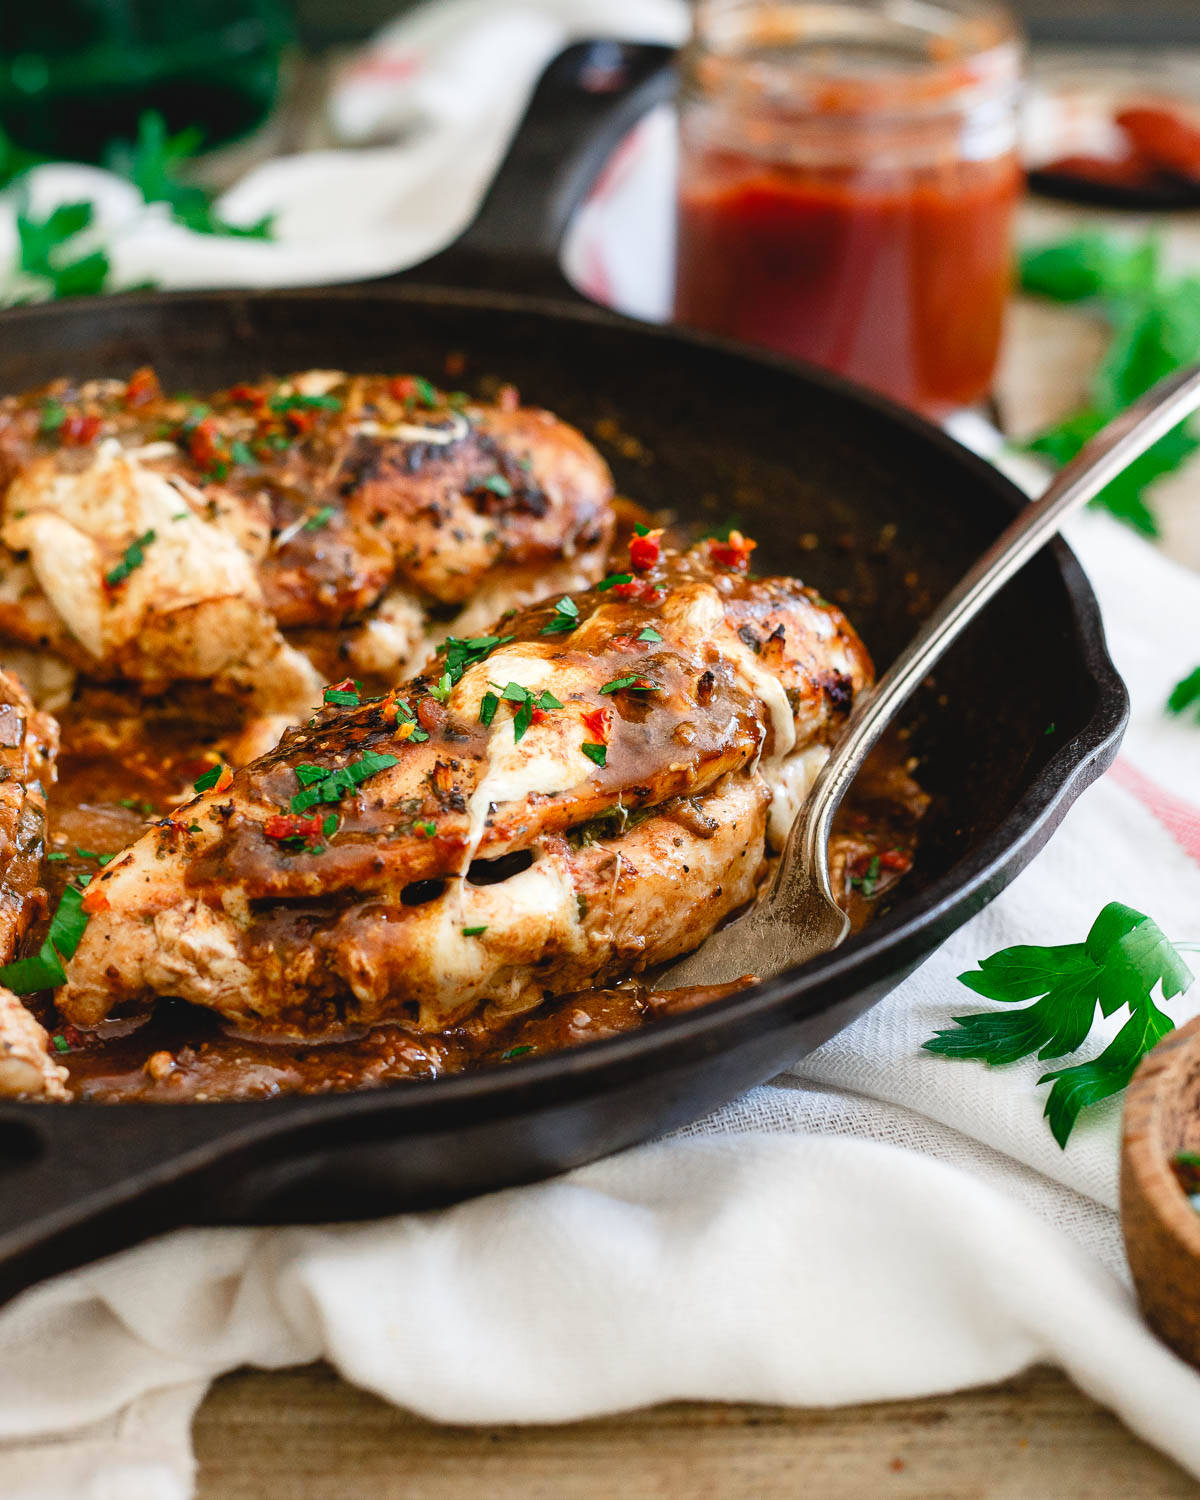 This stuffed chicken marsala is an even more delicious twist on the classic Italian dish with melted mozzarella, sweet and savory tomato butter and fresh basil cooked inside the chicken.